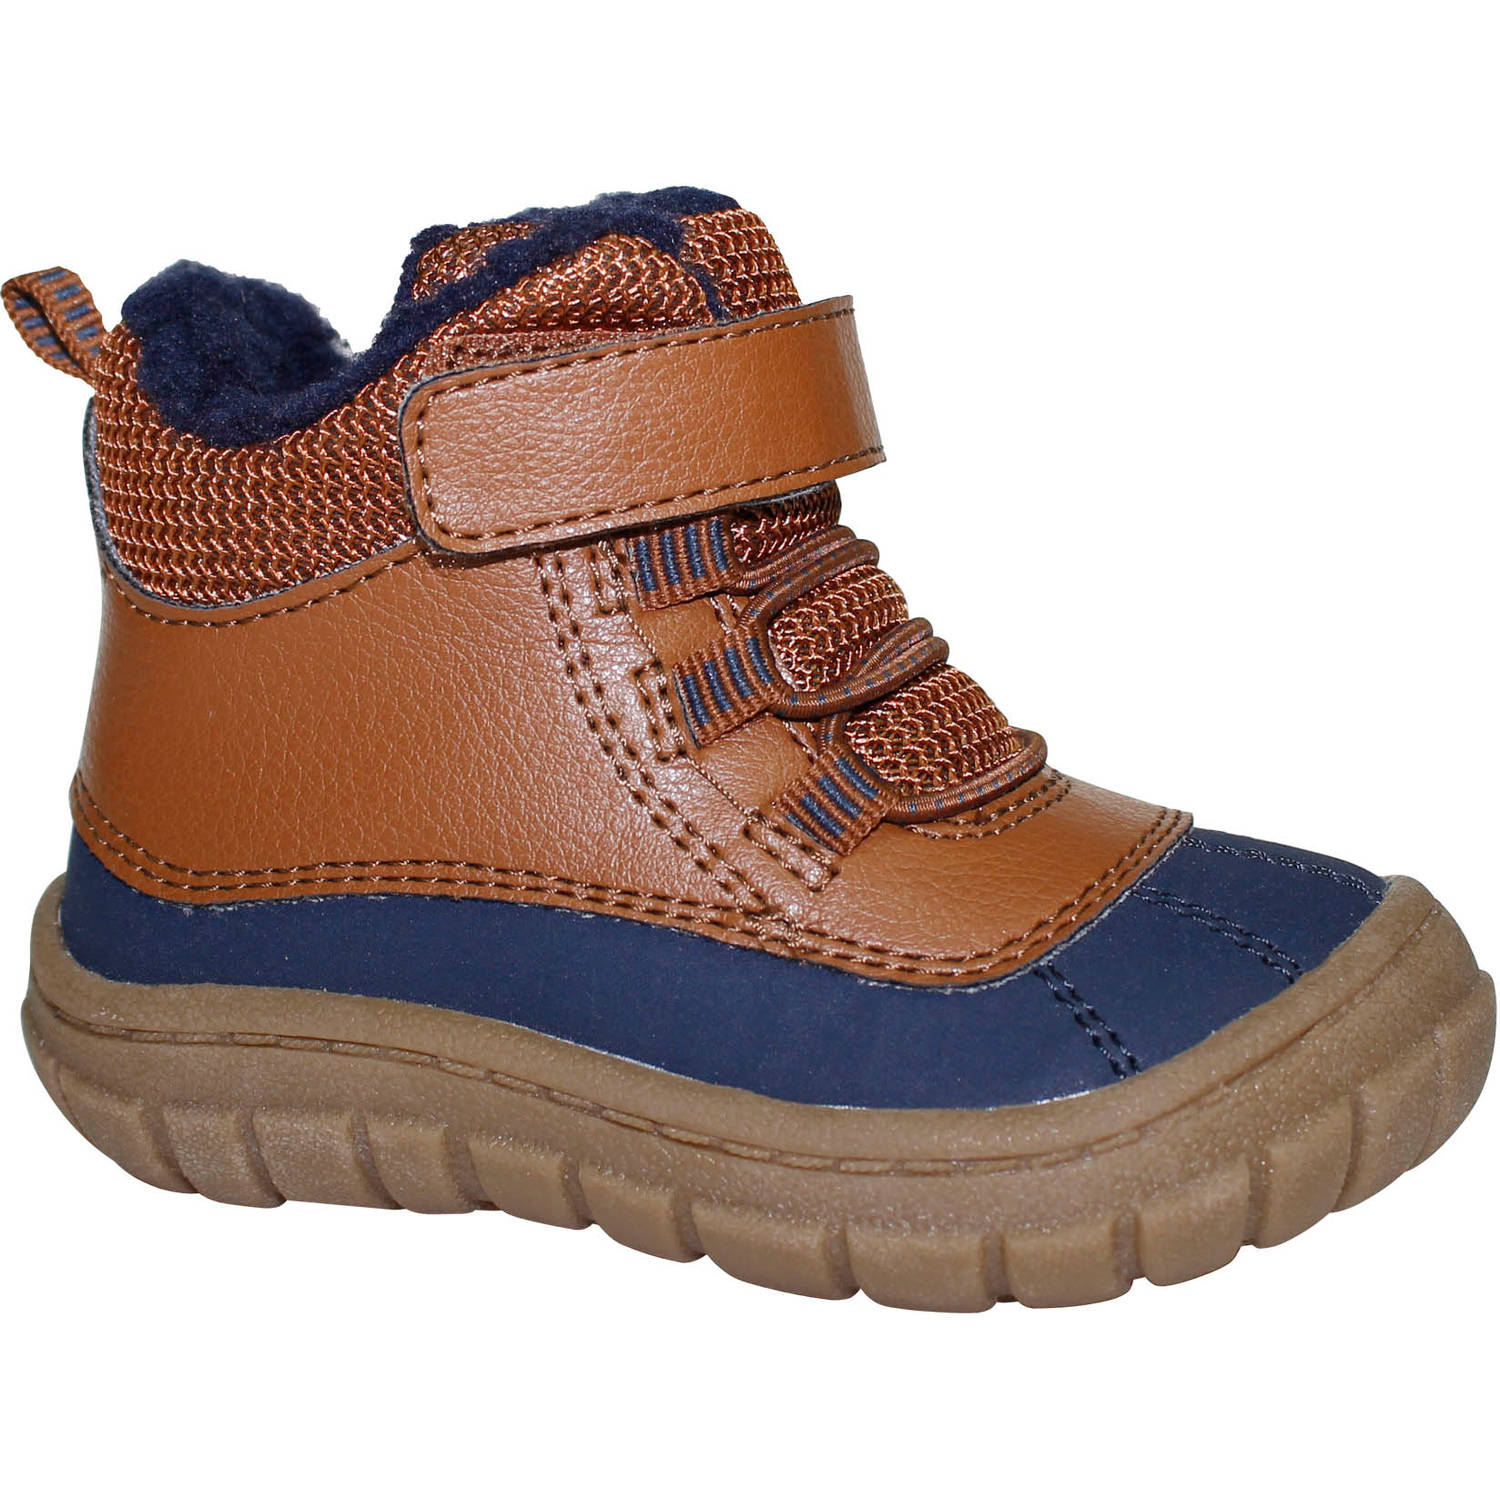 Garanimals Boys' Pre-Walk Fur Boot